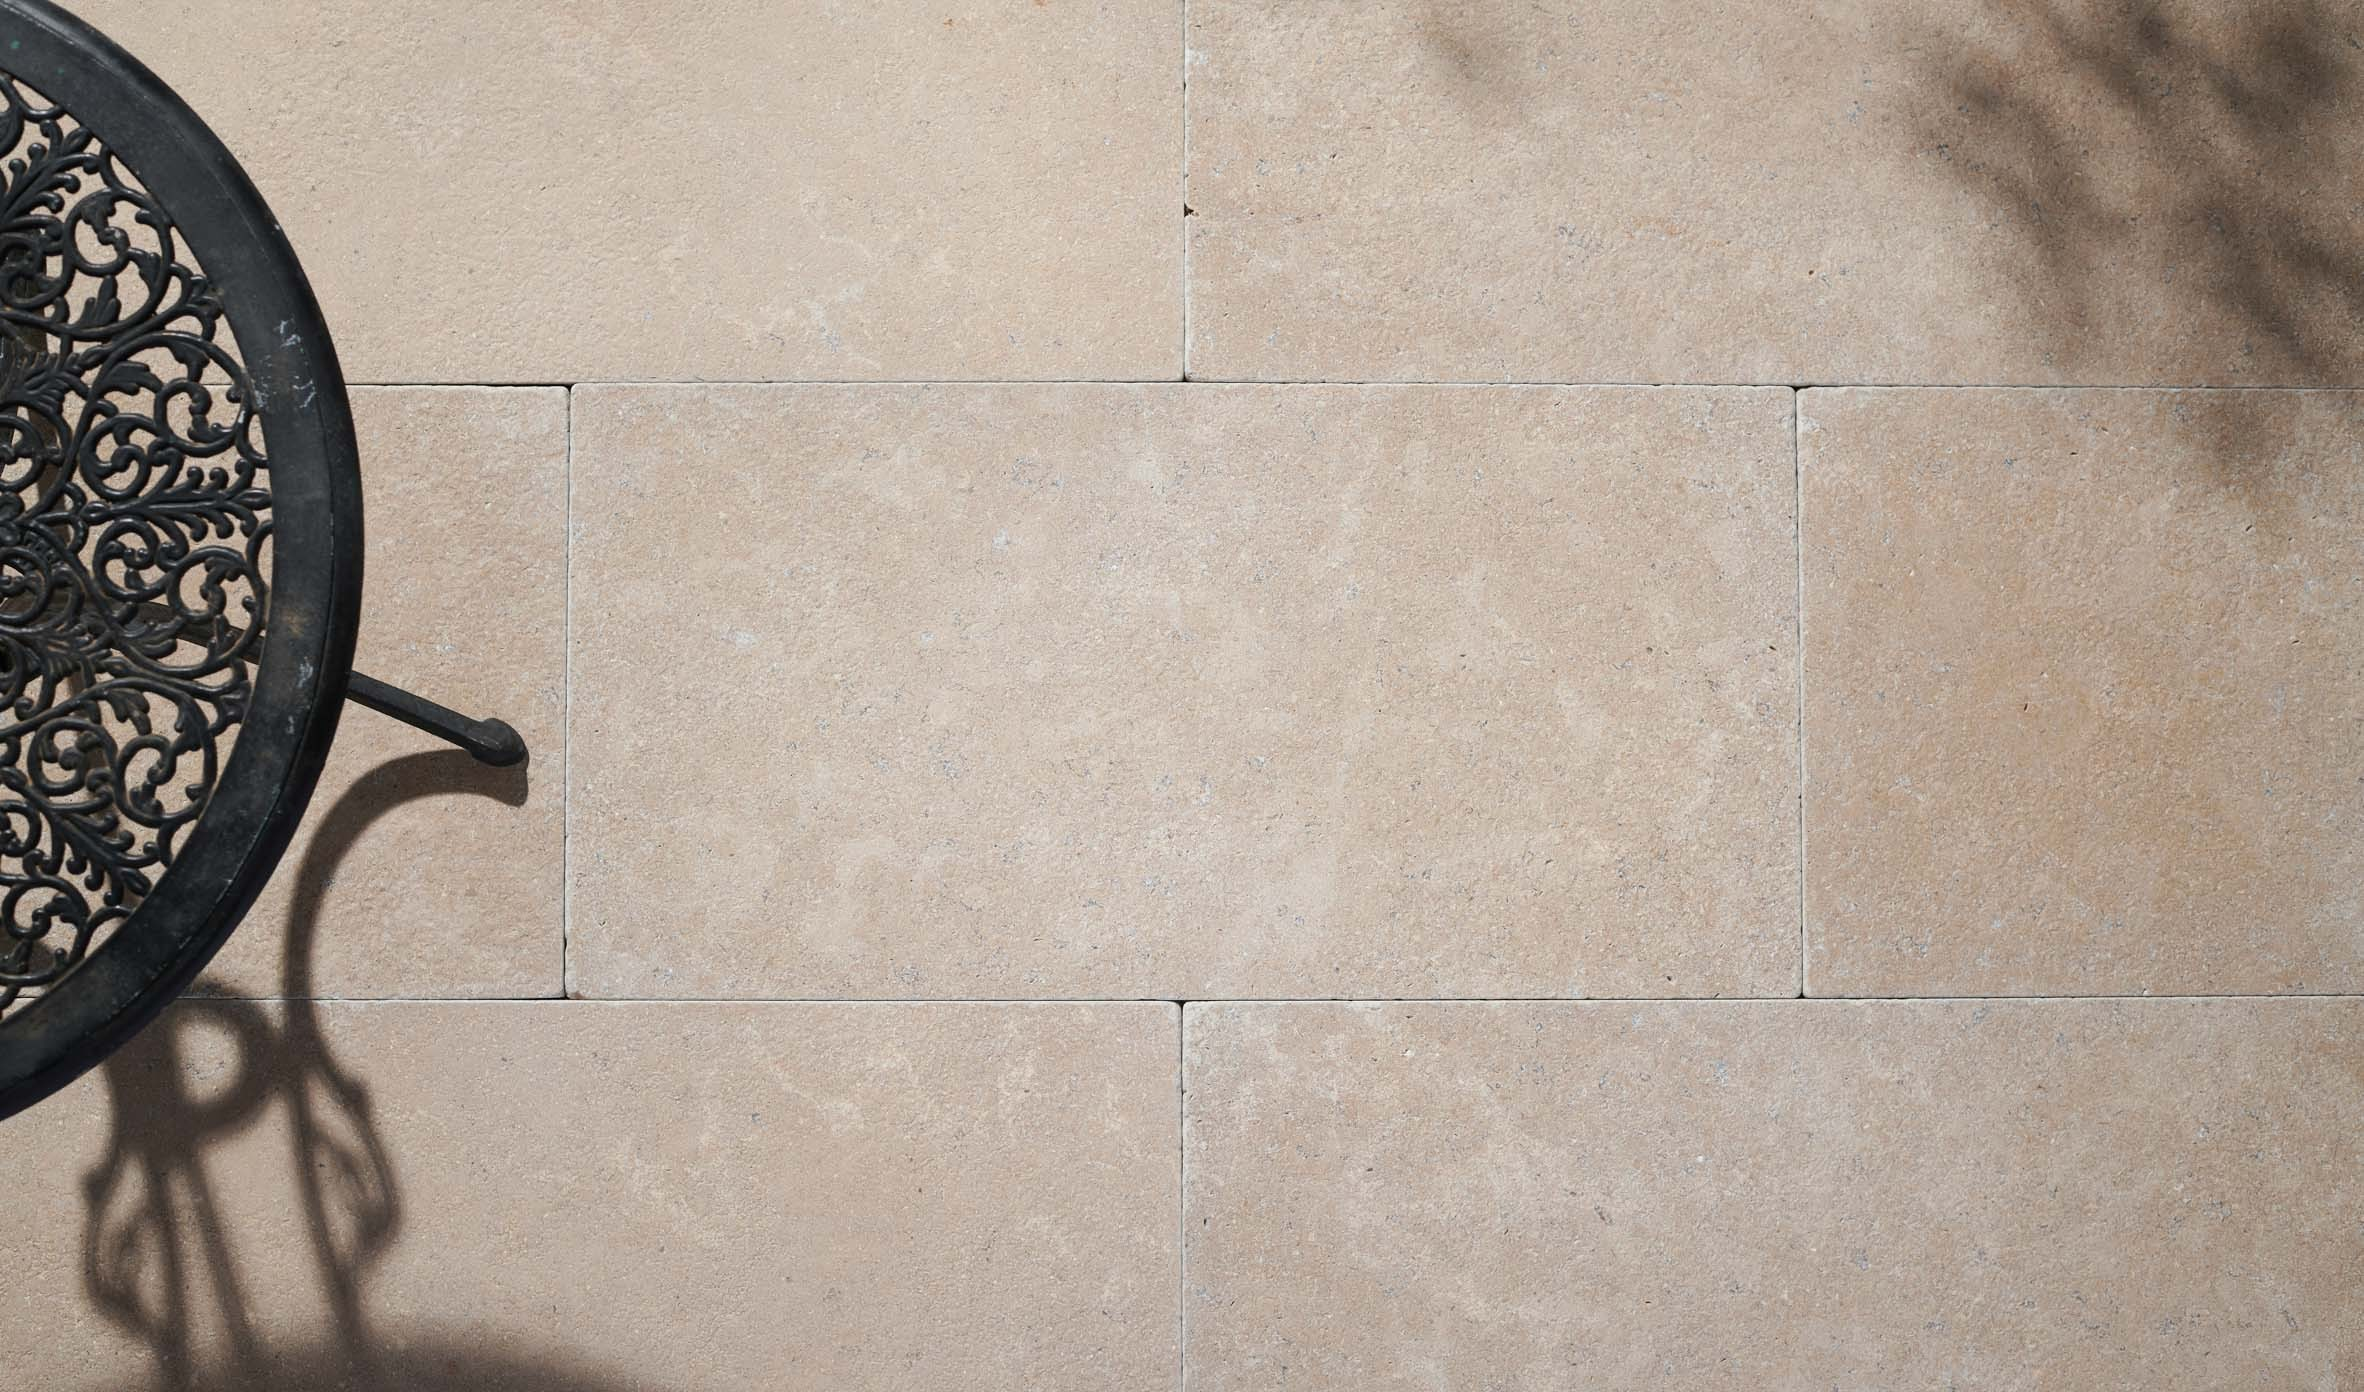 Stone-Pavers-and-Tiles-Outdoor Thumbnail stone-pavers-and-tiles-outdoor-thumbnail-10